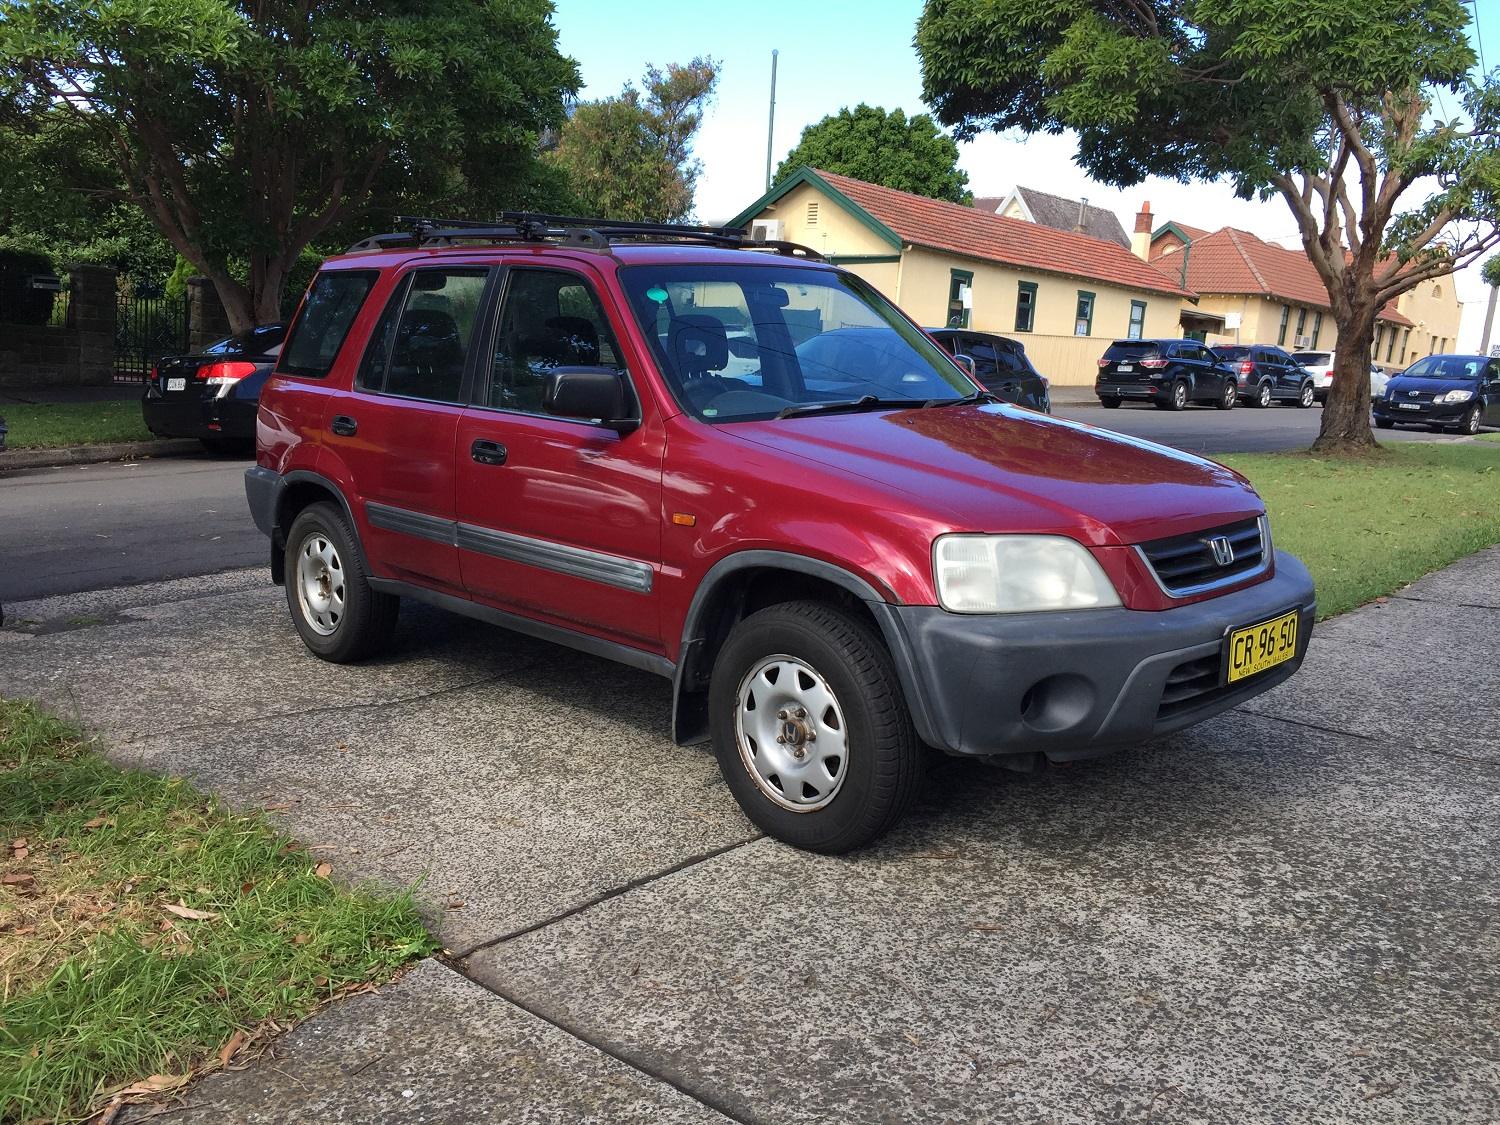 Picture of Leonardo's 2001 Honda Crv